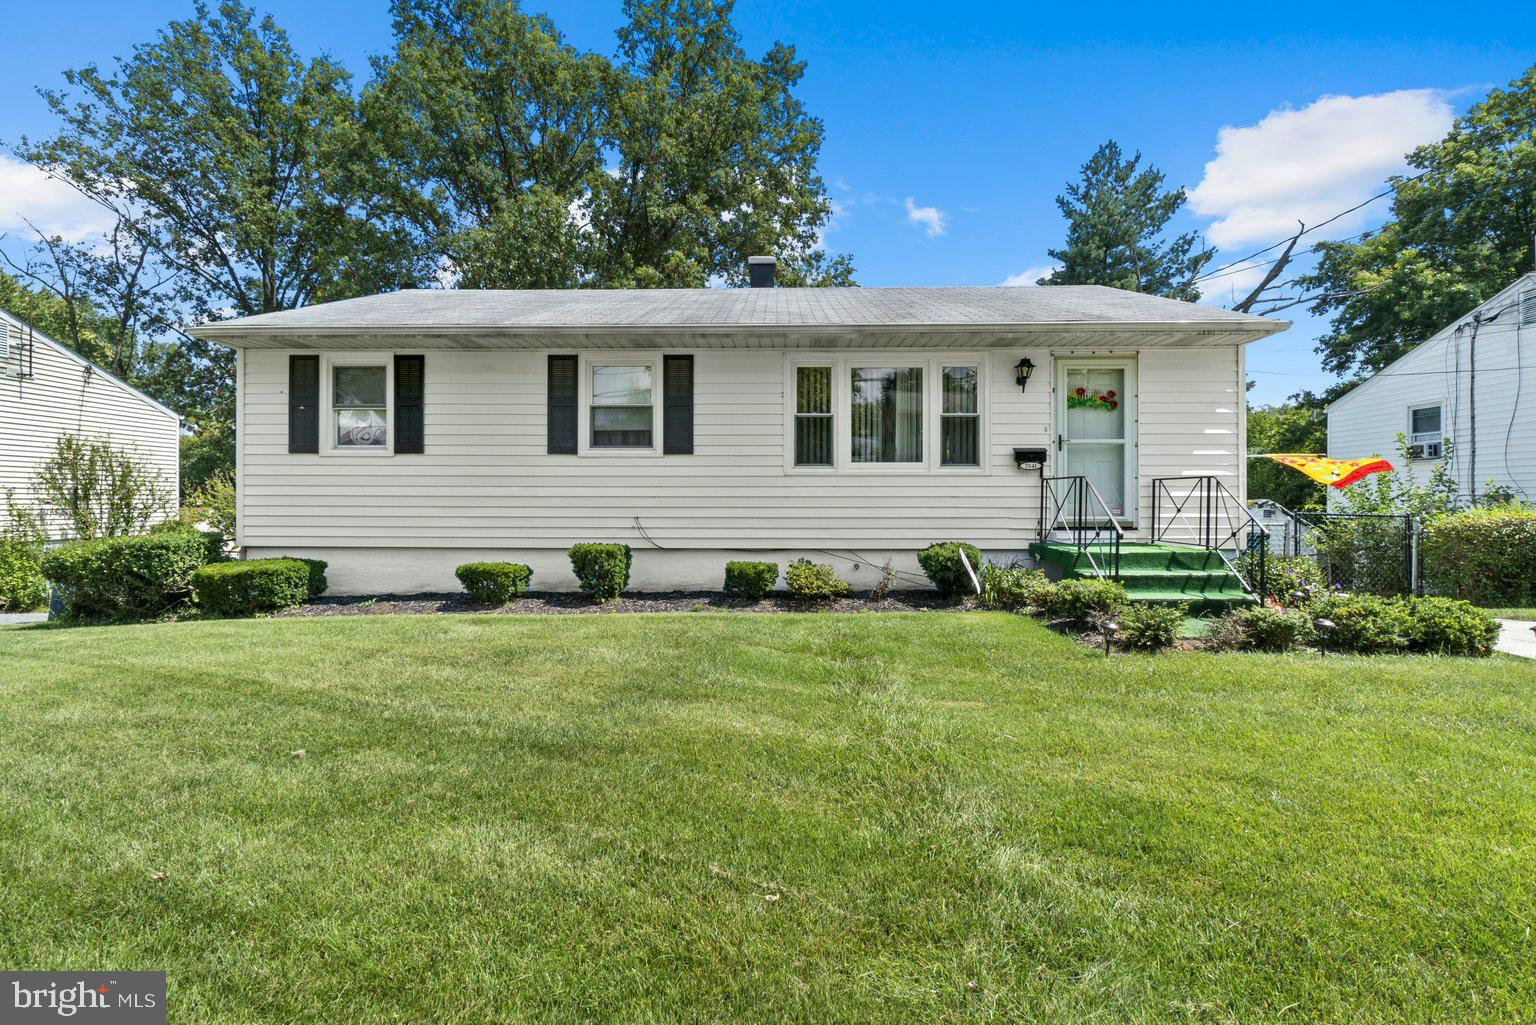 Their loss is your gain!  Last minute fall through puts this  beautifully maintained rancher in quai